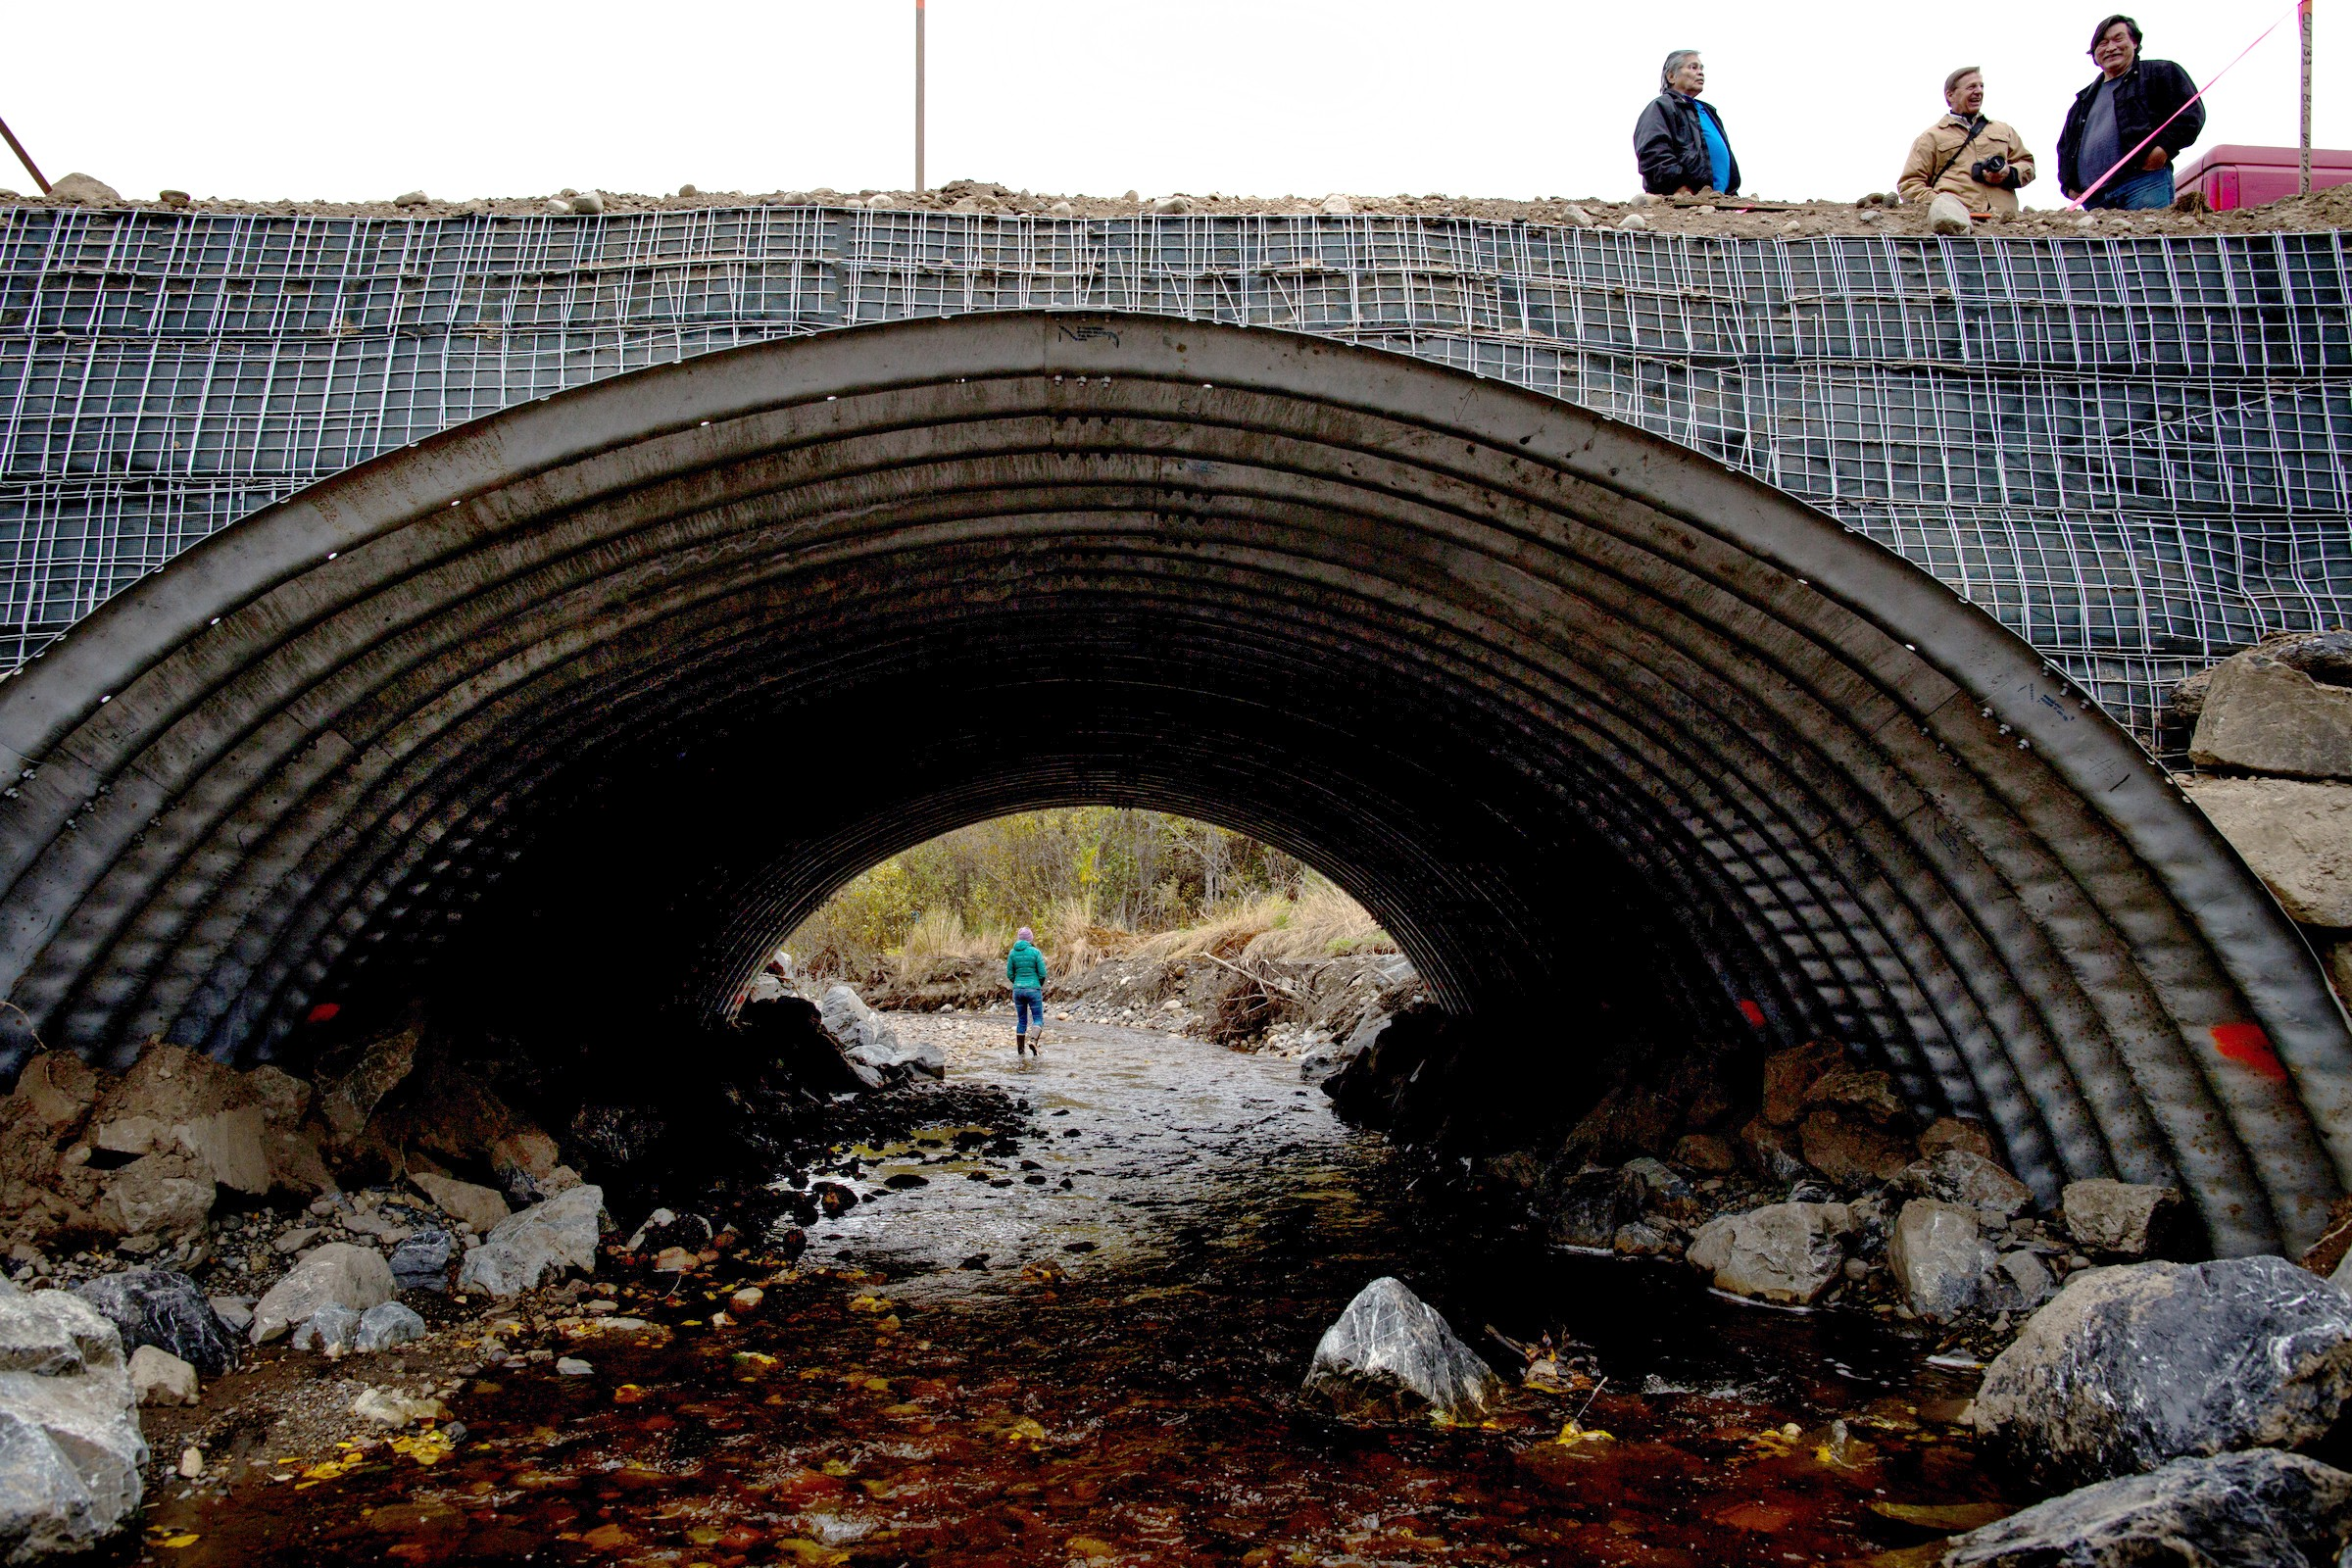 Fish-friendly roads? Yes, that's a thing  - Updates from the